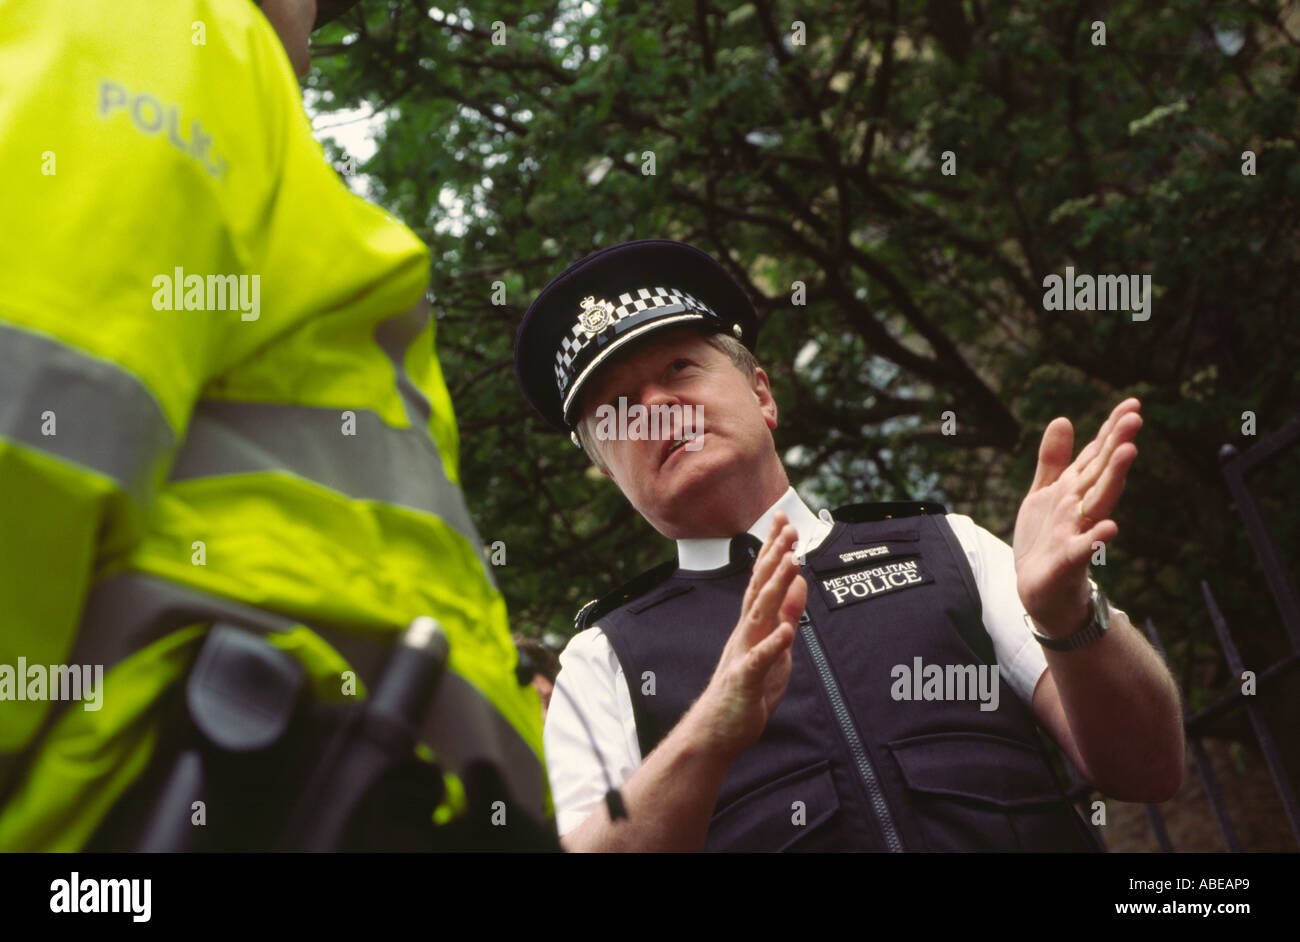 Sir Ian Blair Metropolitan Police Commissioner on patrol with police officers in Dalston, Hackney, London, UK Stock Photo